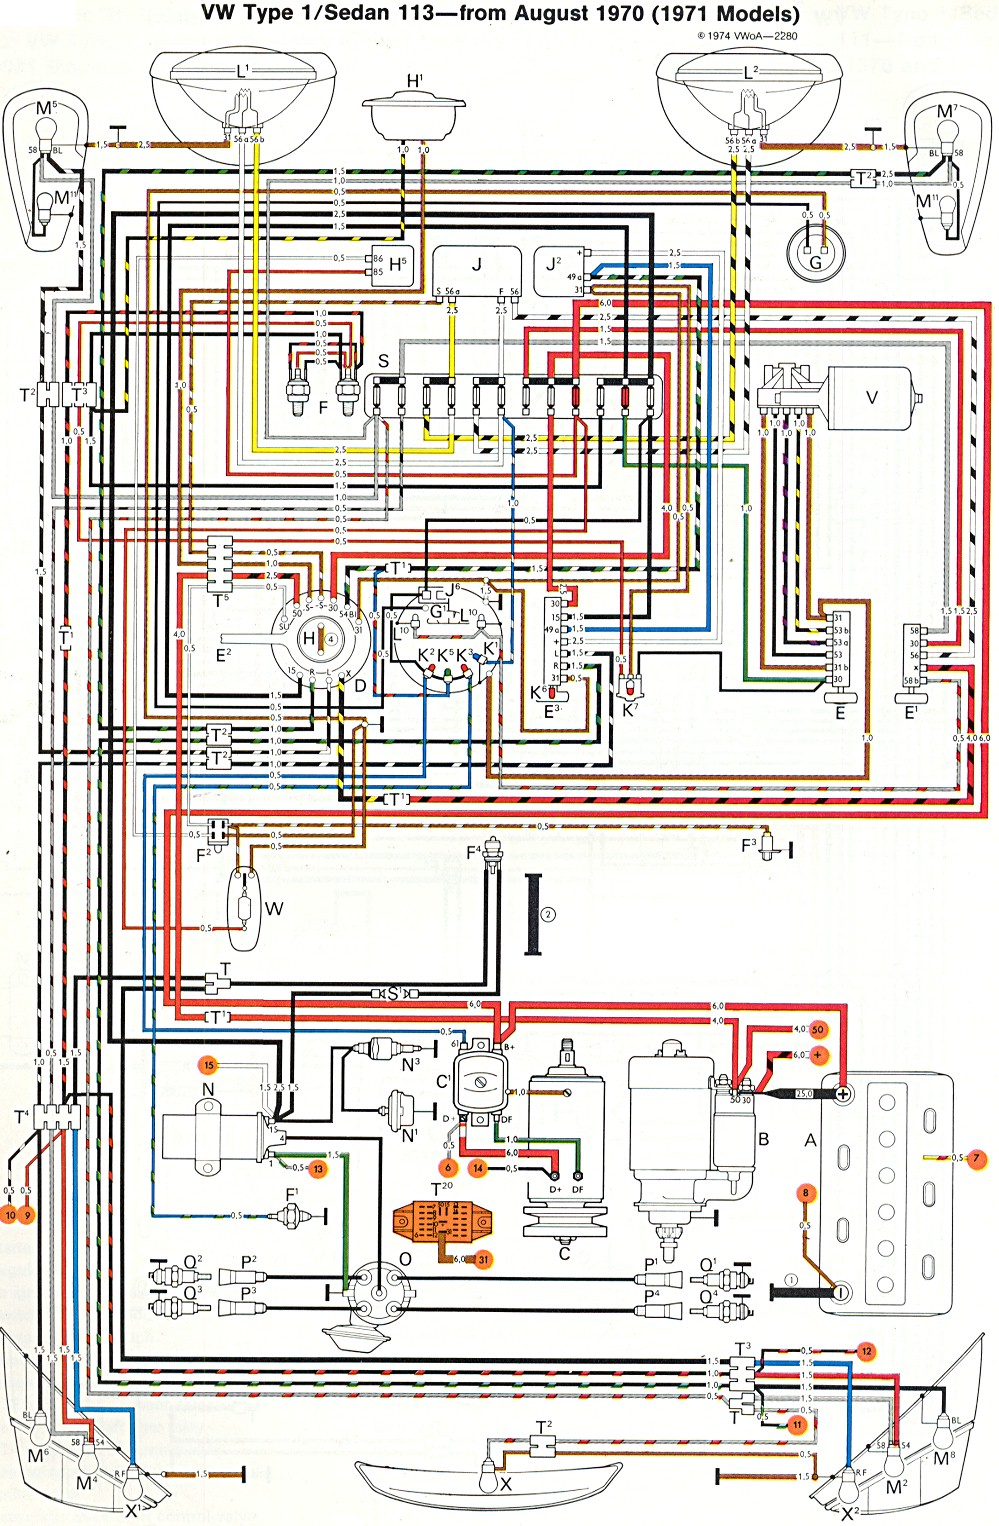 72 vw fuse box wiring diagram 74 VW Beetle MPG electrical diagram vw beetle schematic wiring diagram72 super beetle fuse box wiring diagram vw beetle electrical